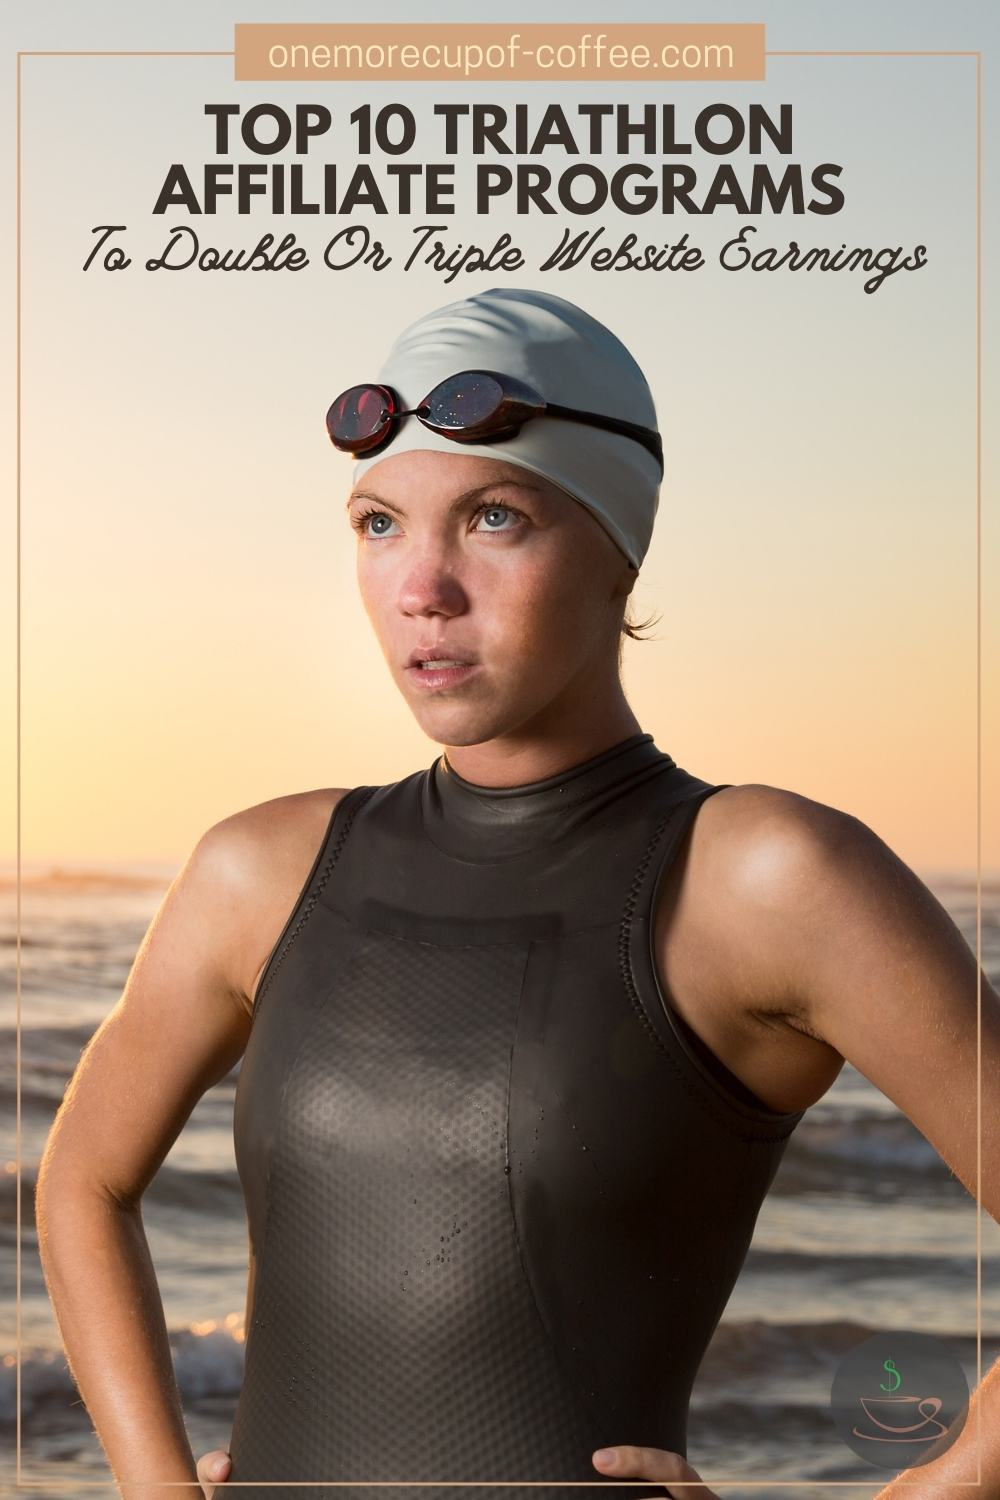 """Closeup image of a female triathlete in black wetsuit with the ocean in the background, with text overlay """"Top 10 Triathlon Affiliate Programs To Double Or Triple Website Earnings"""""""